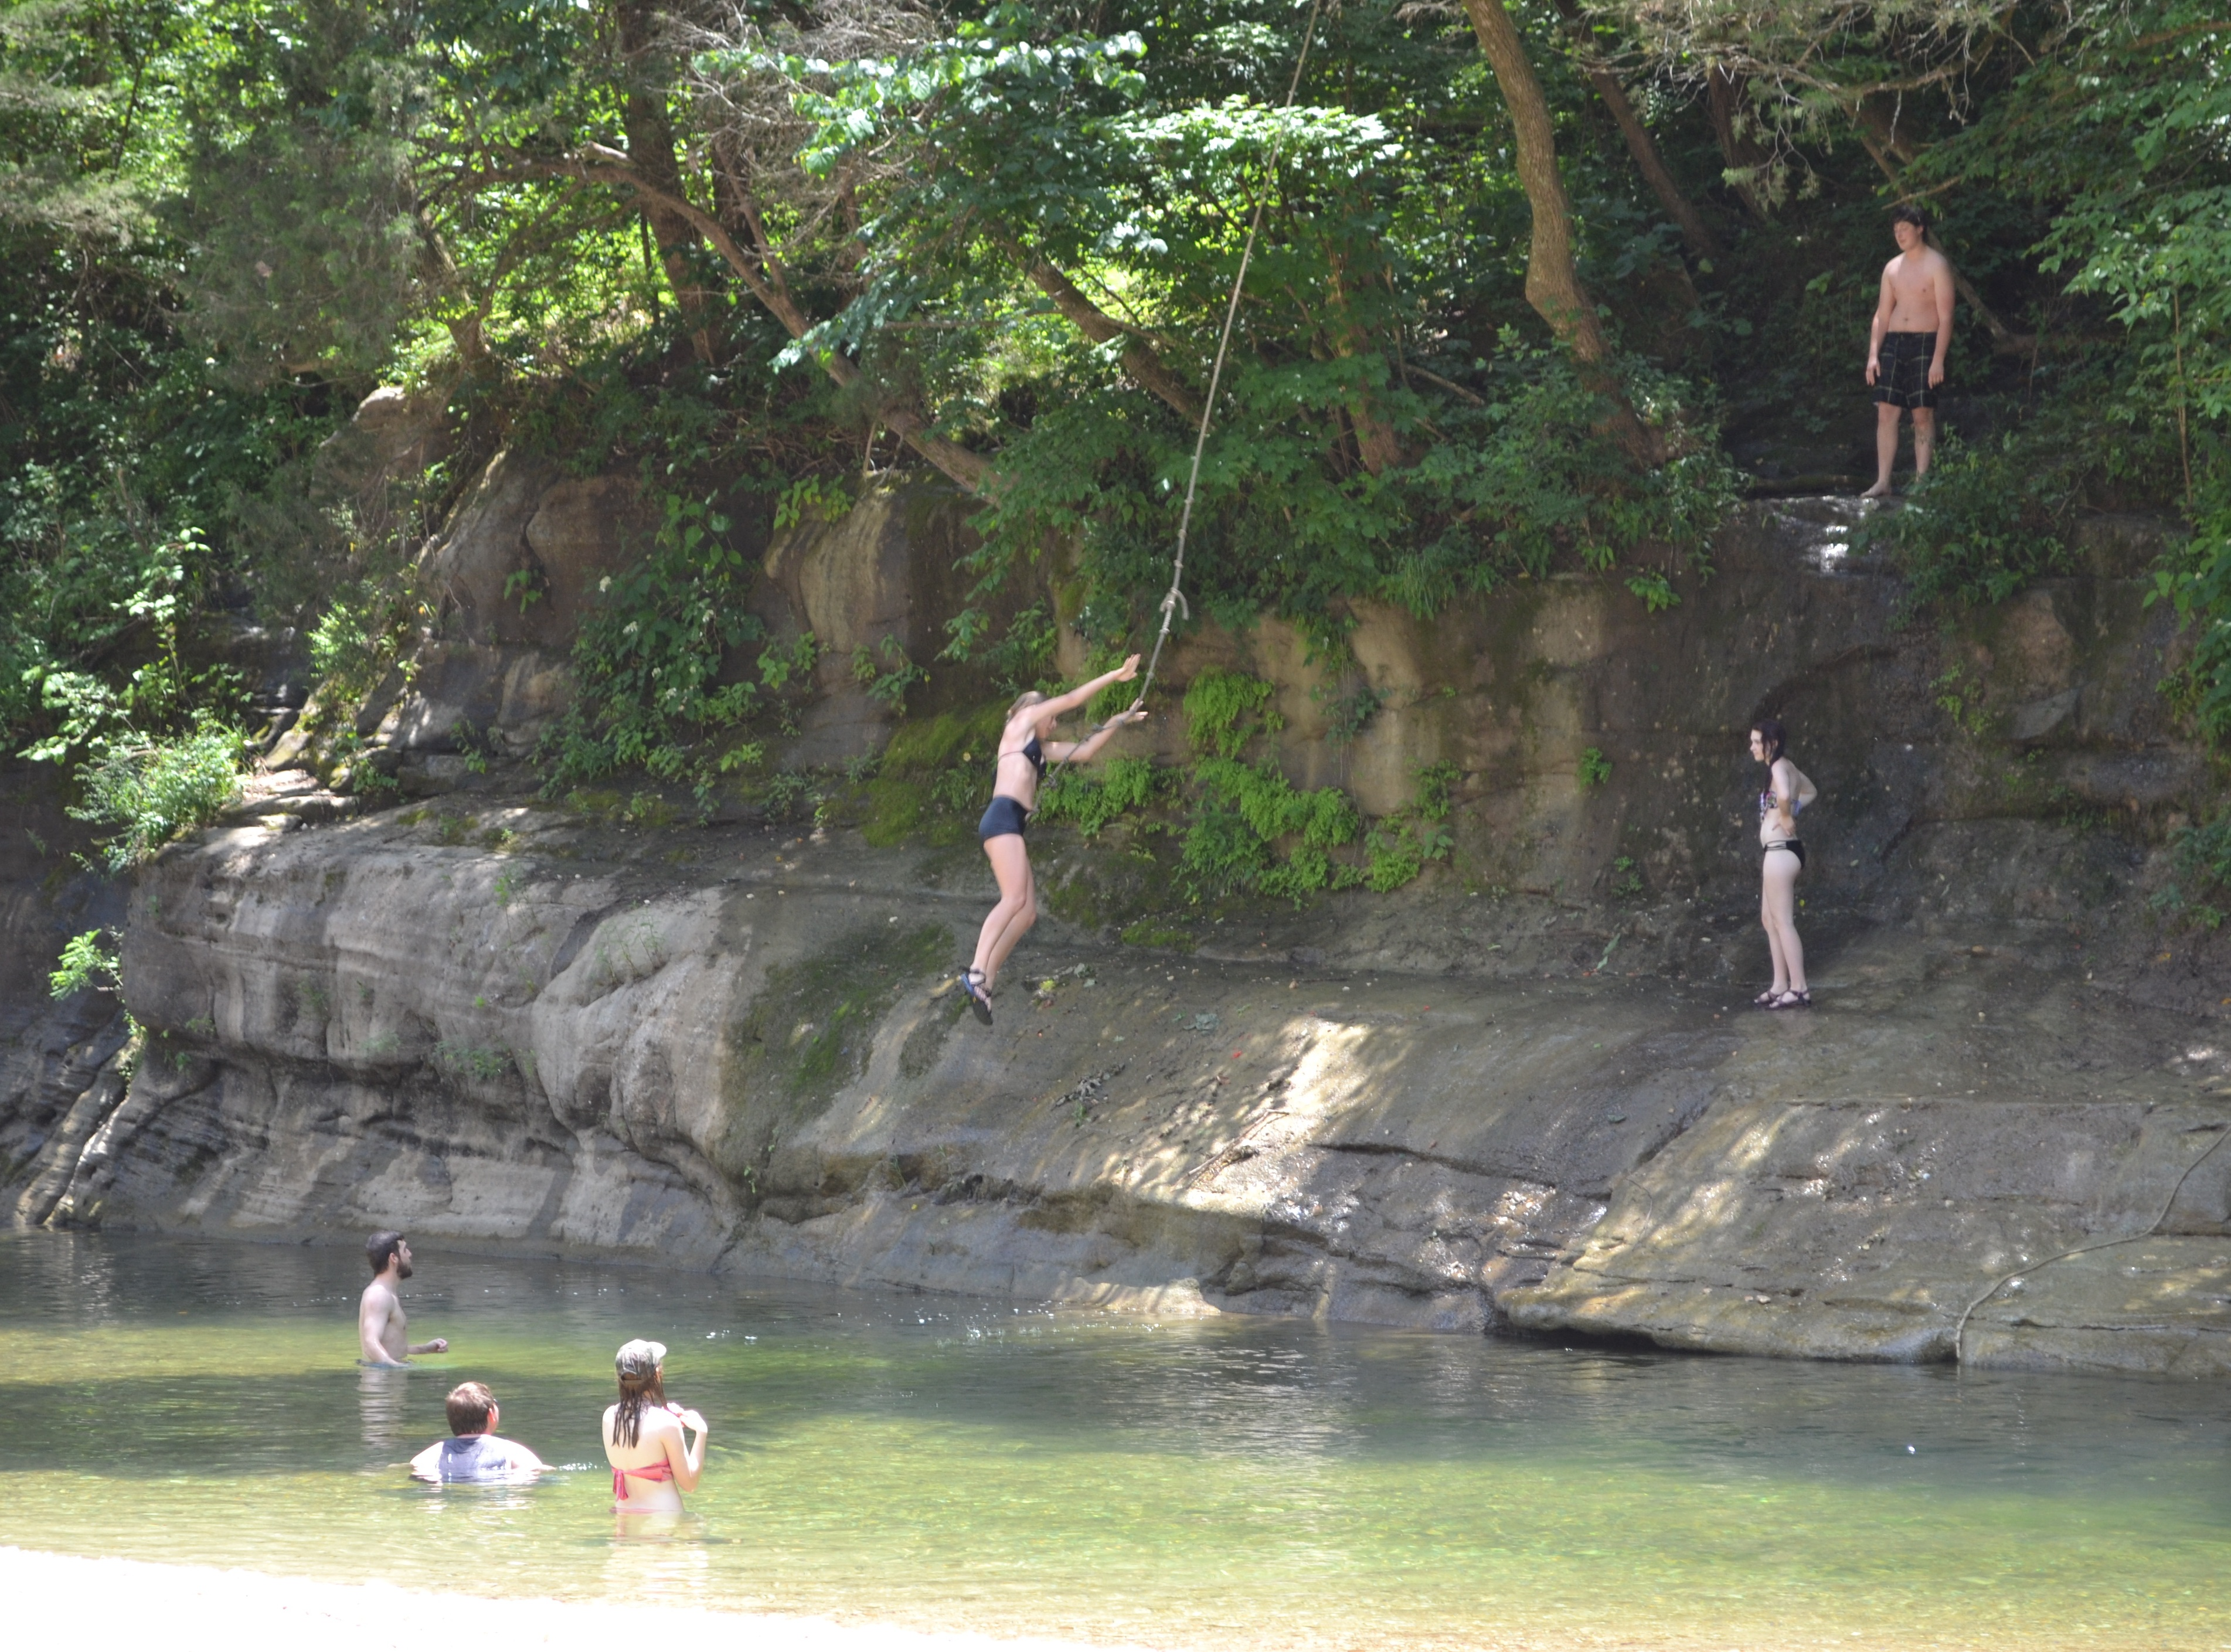 Mt._View_Swimmin_Hole_002